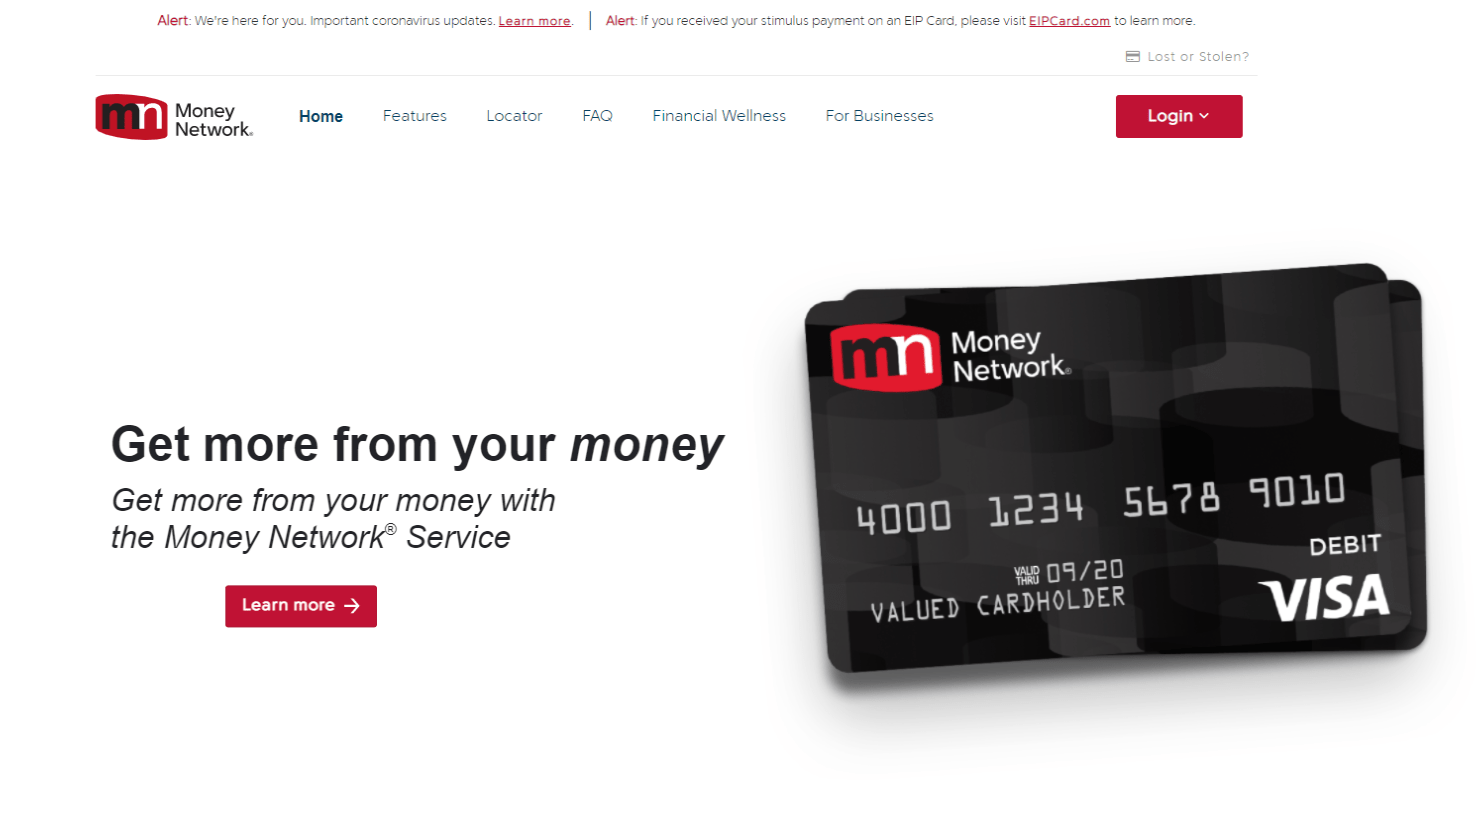 Money Network Card Activation